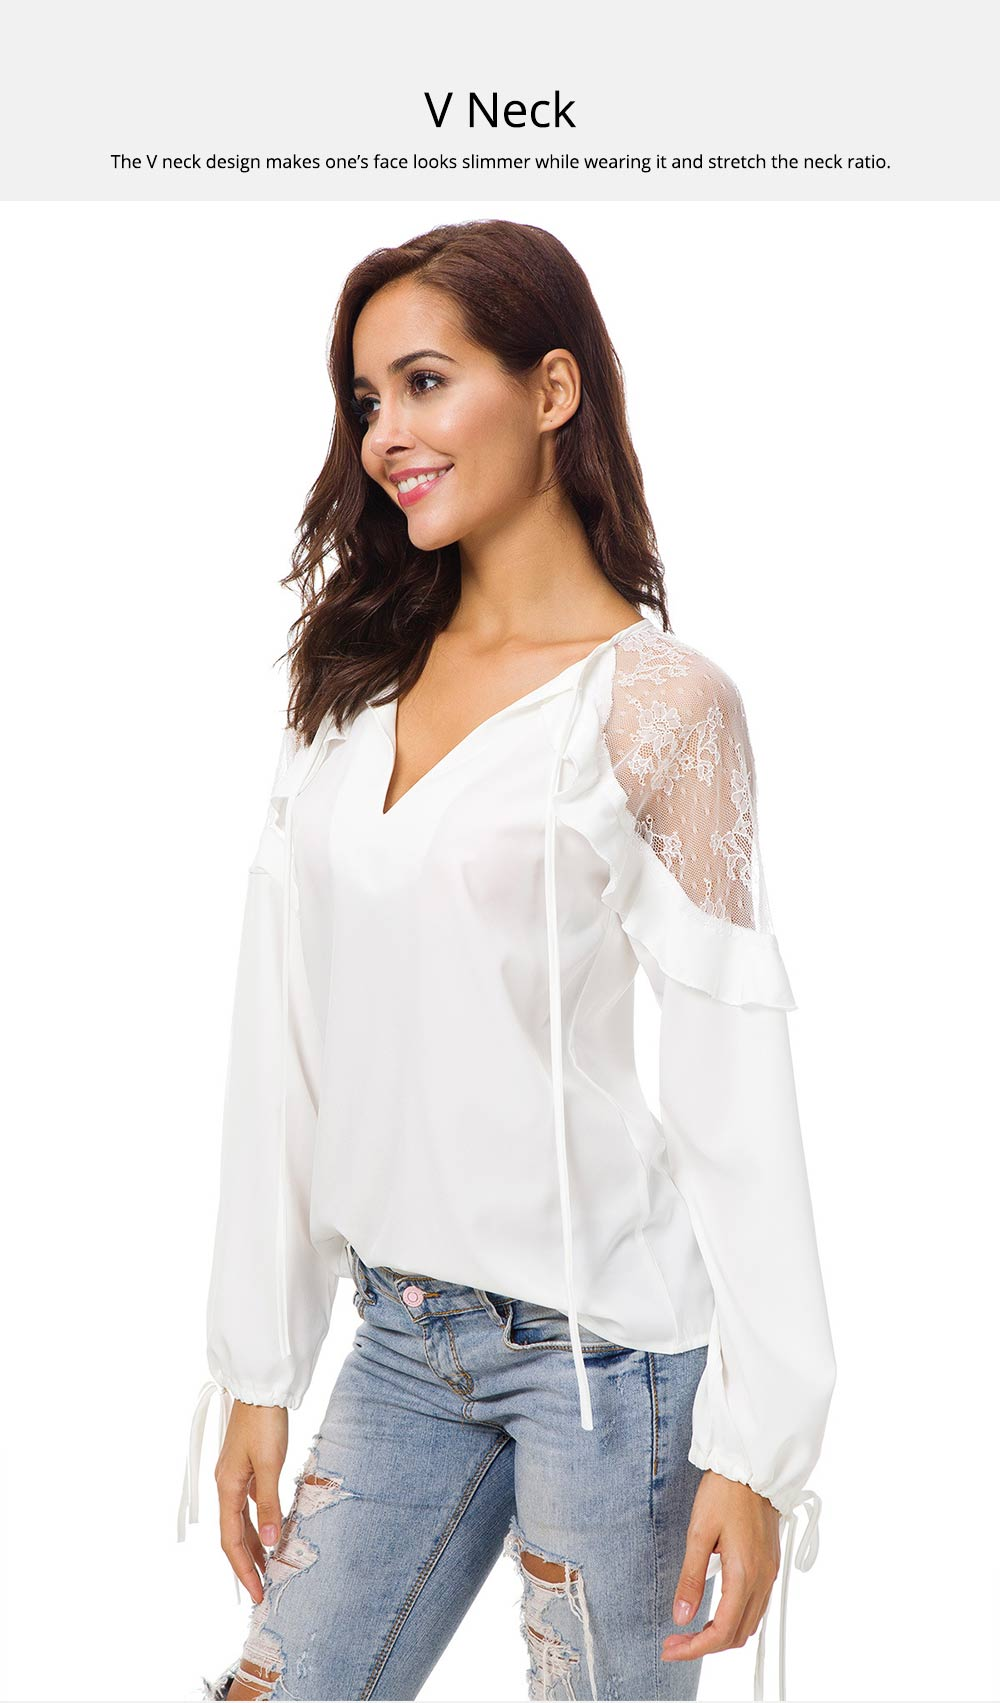 Western Style Dress Top for Women 2019 Spring, Lace Joint Undergarment Base Shirt Georgette Dress 4